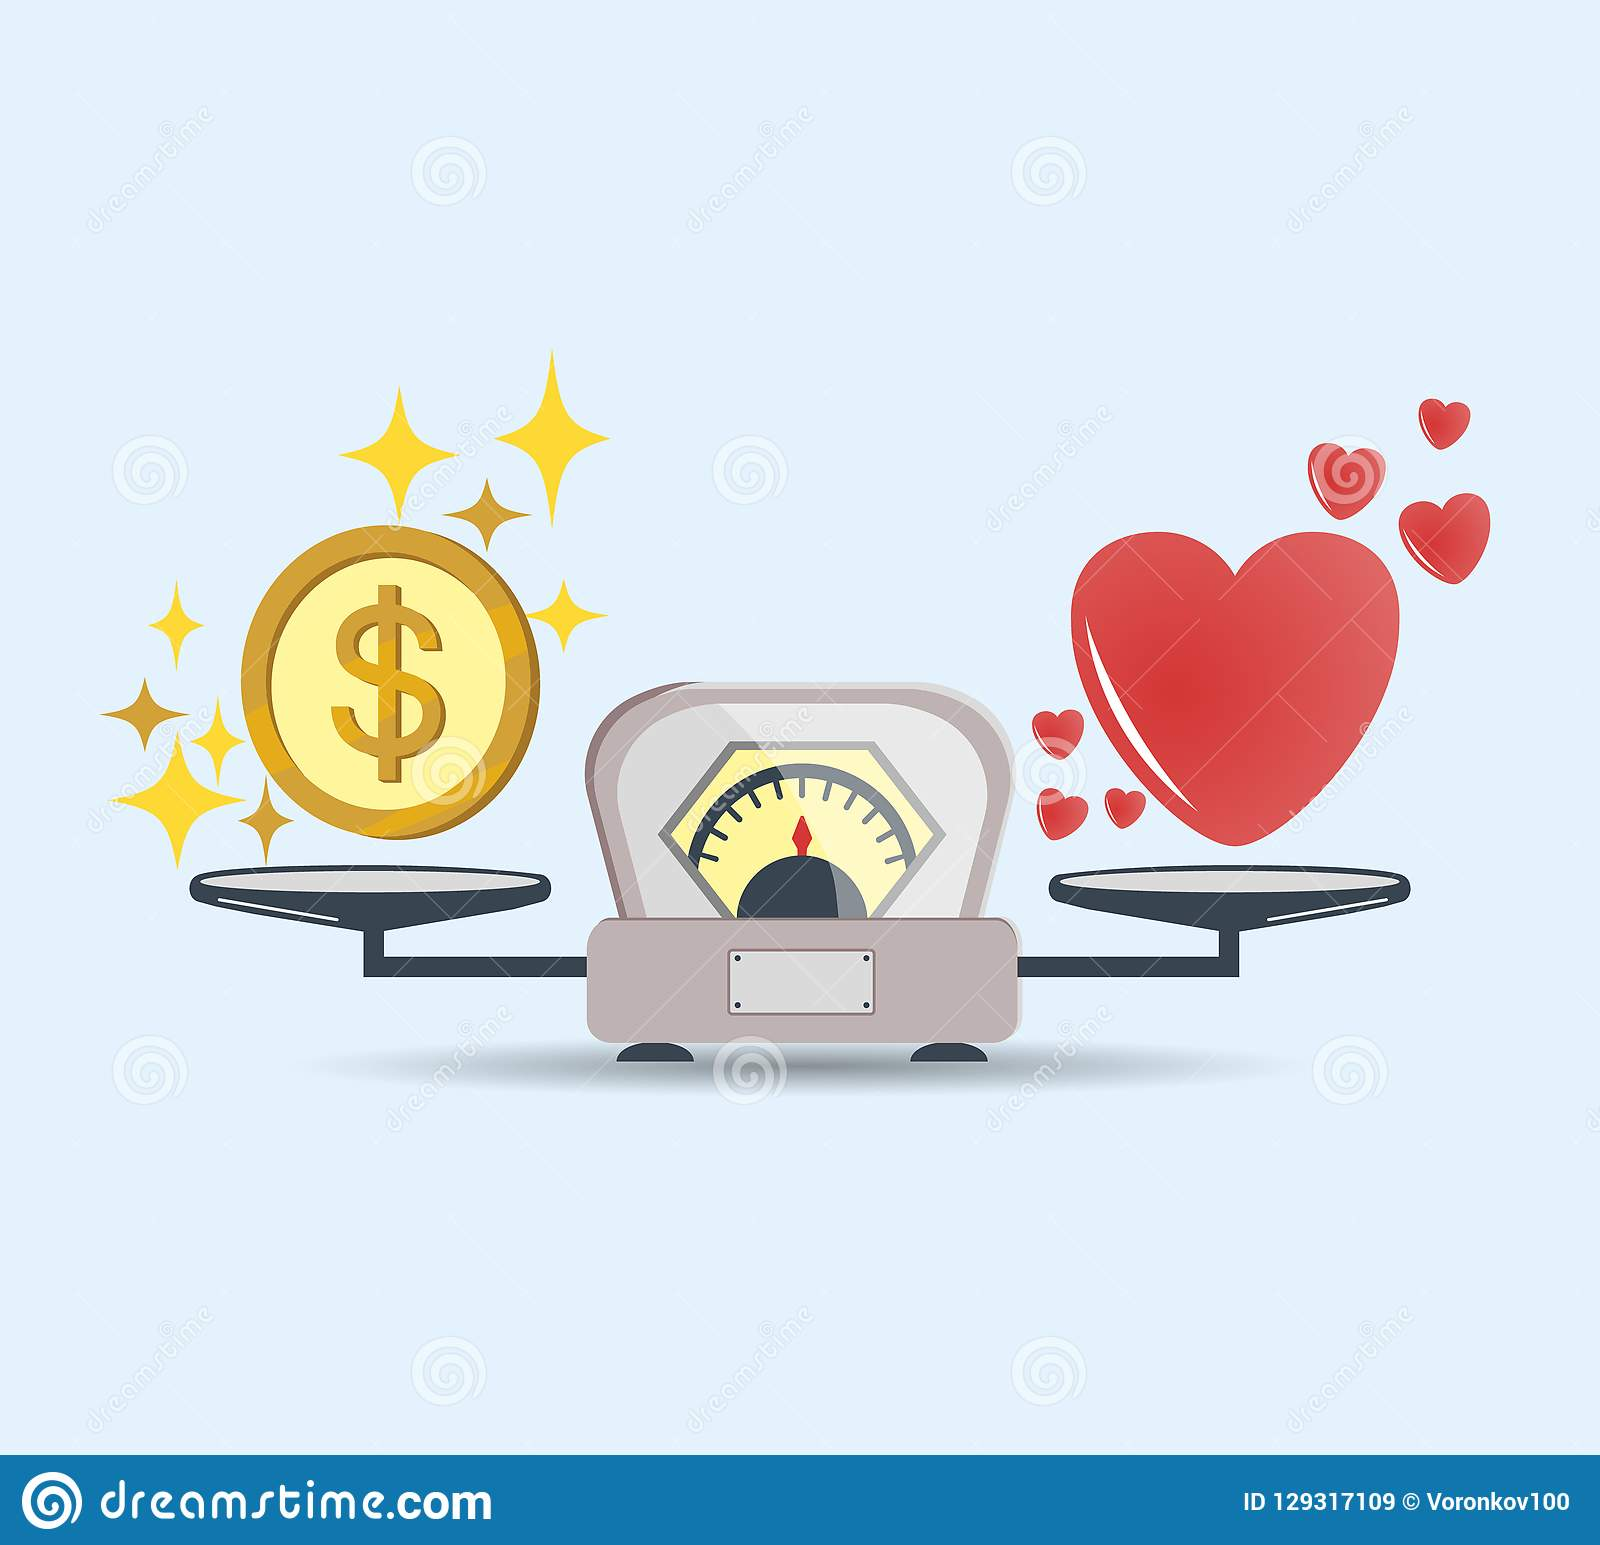 Heart and money for scales icon. Balance of money and love in scale. Concept of choice. Scales with love and money coins. Vector.